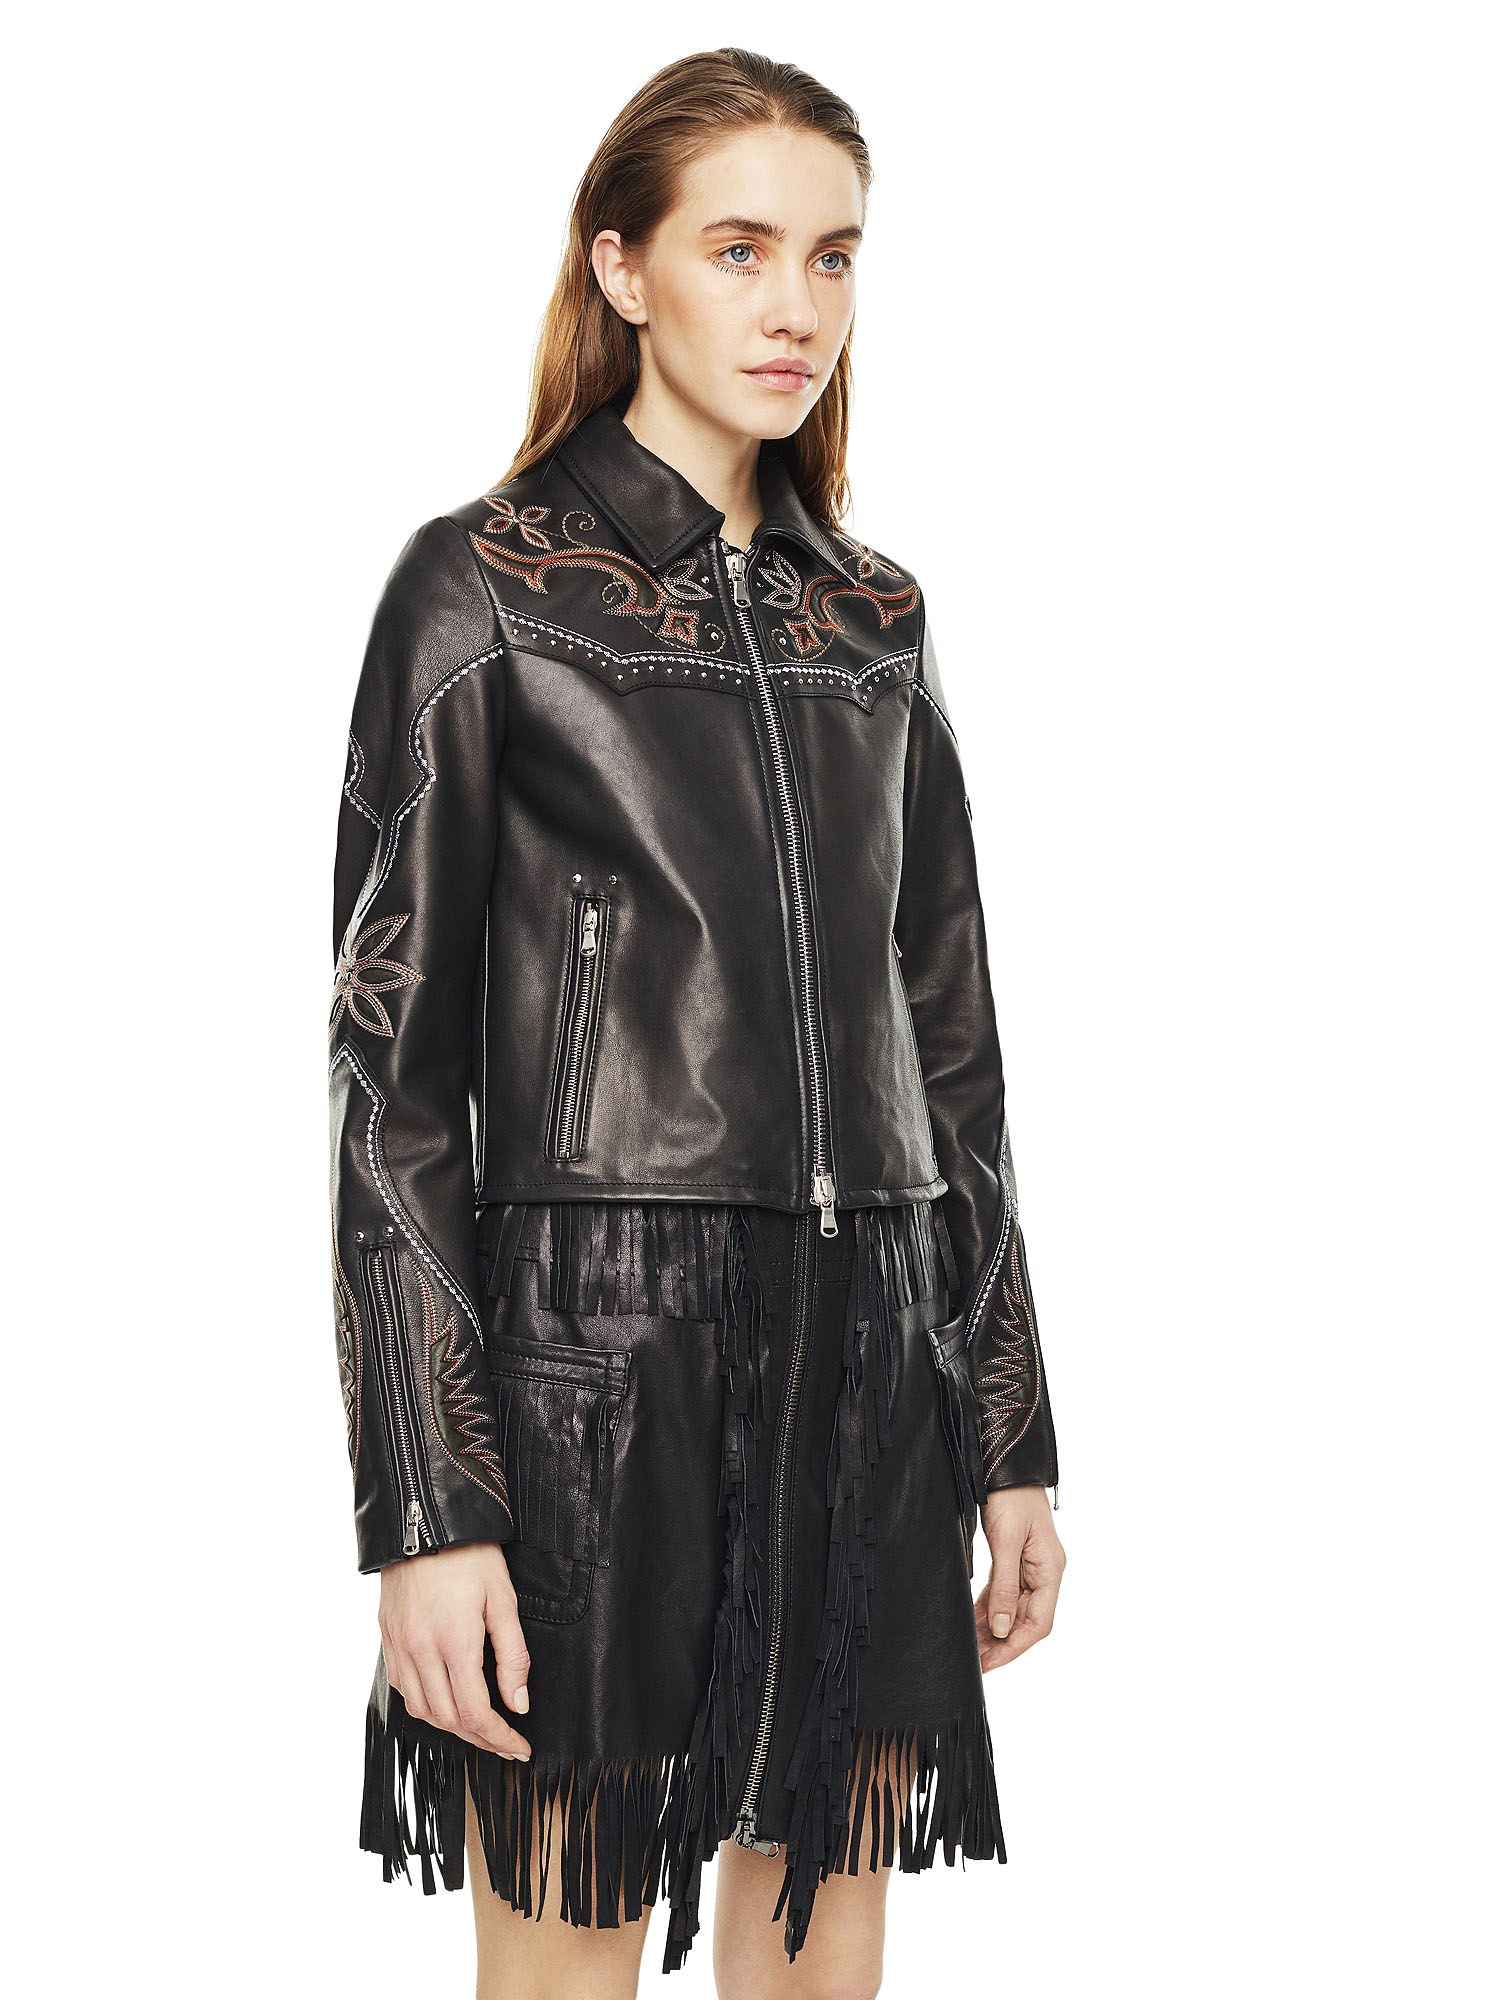 Diesel - LEXIA,  - Leather jackets - Image 5